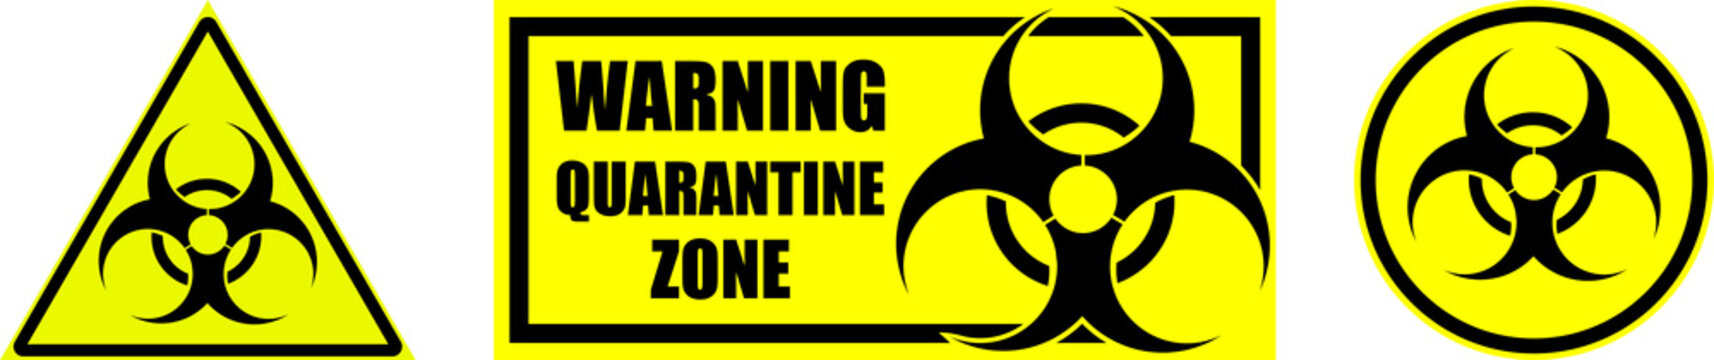 set of yellow biohazard signs and quarantine zones on transparent background